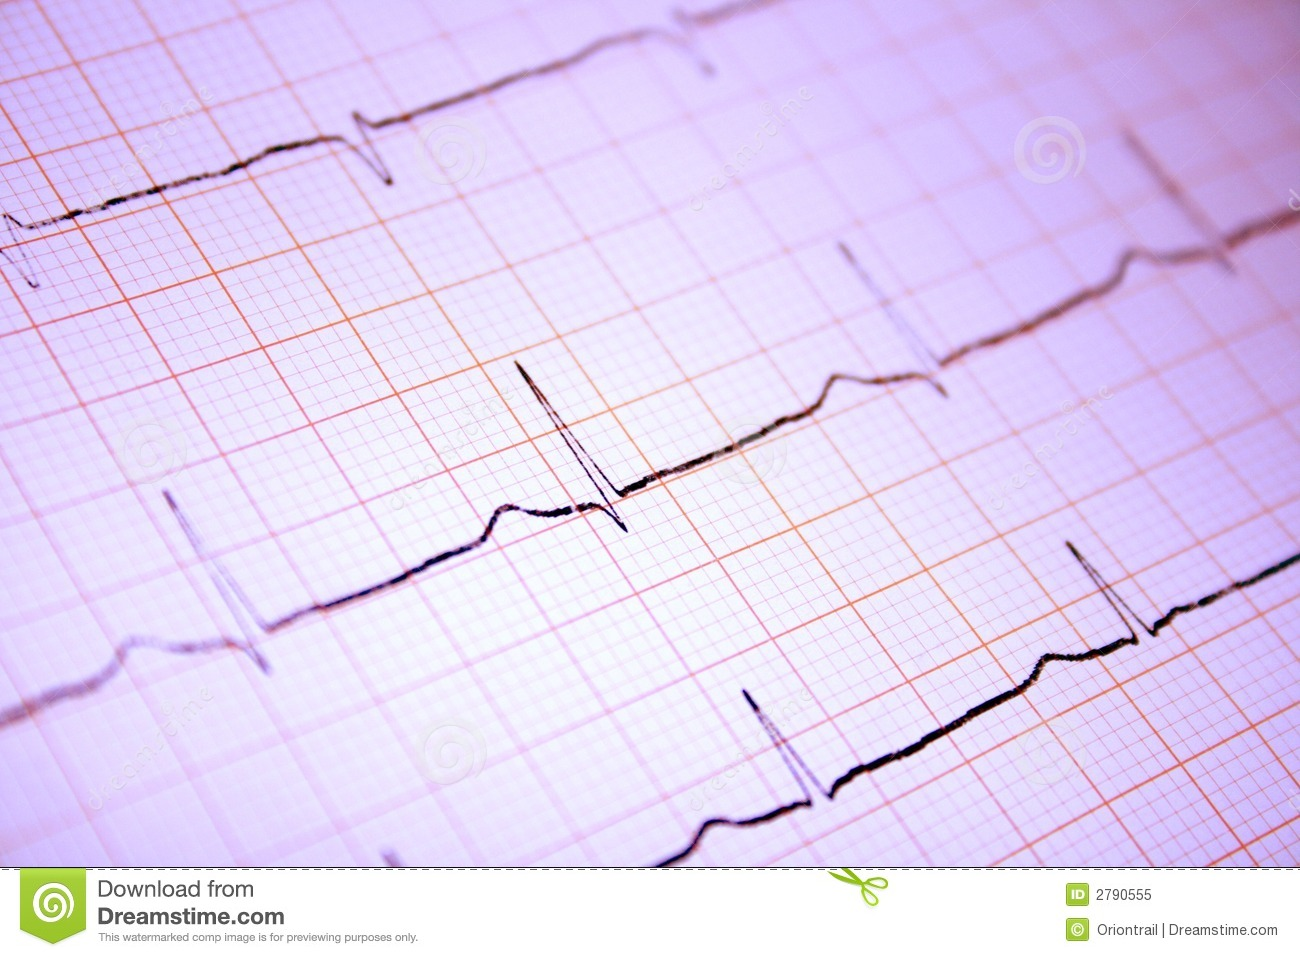 thesis on ecg data compression An lz approach to ecg compression a comparison between the ecg compression methods mentioned above and summary of ecg data compression schemes method.